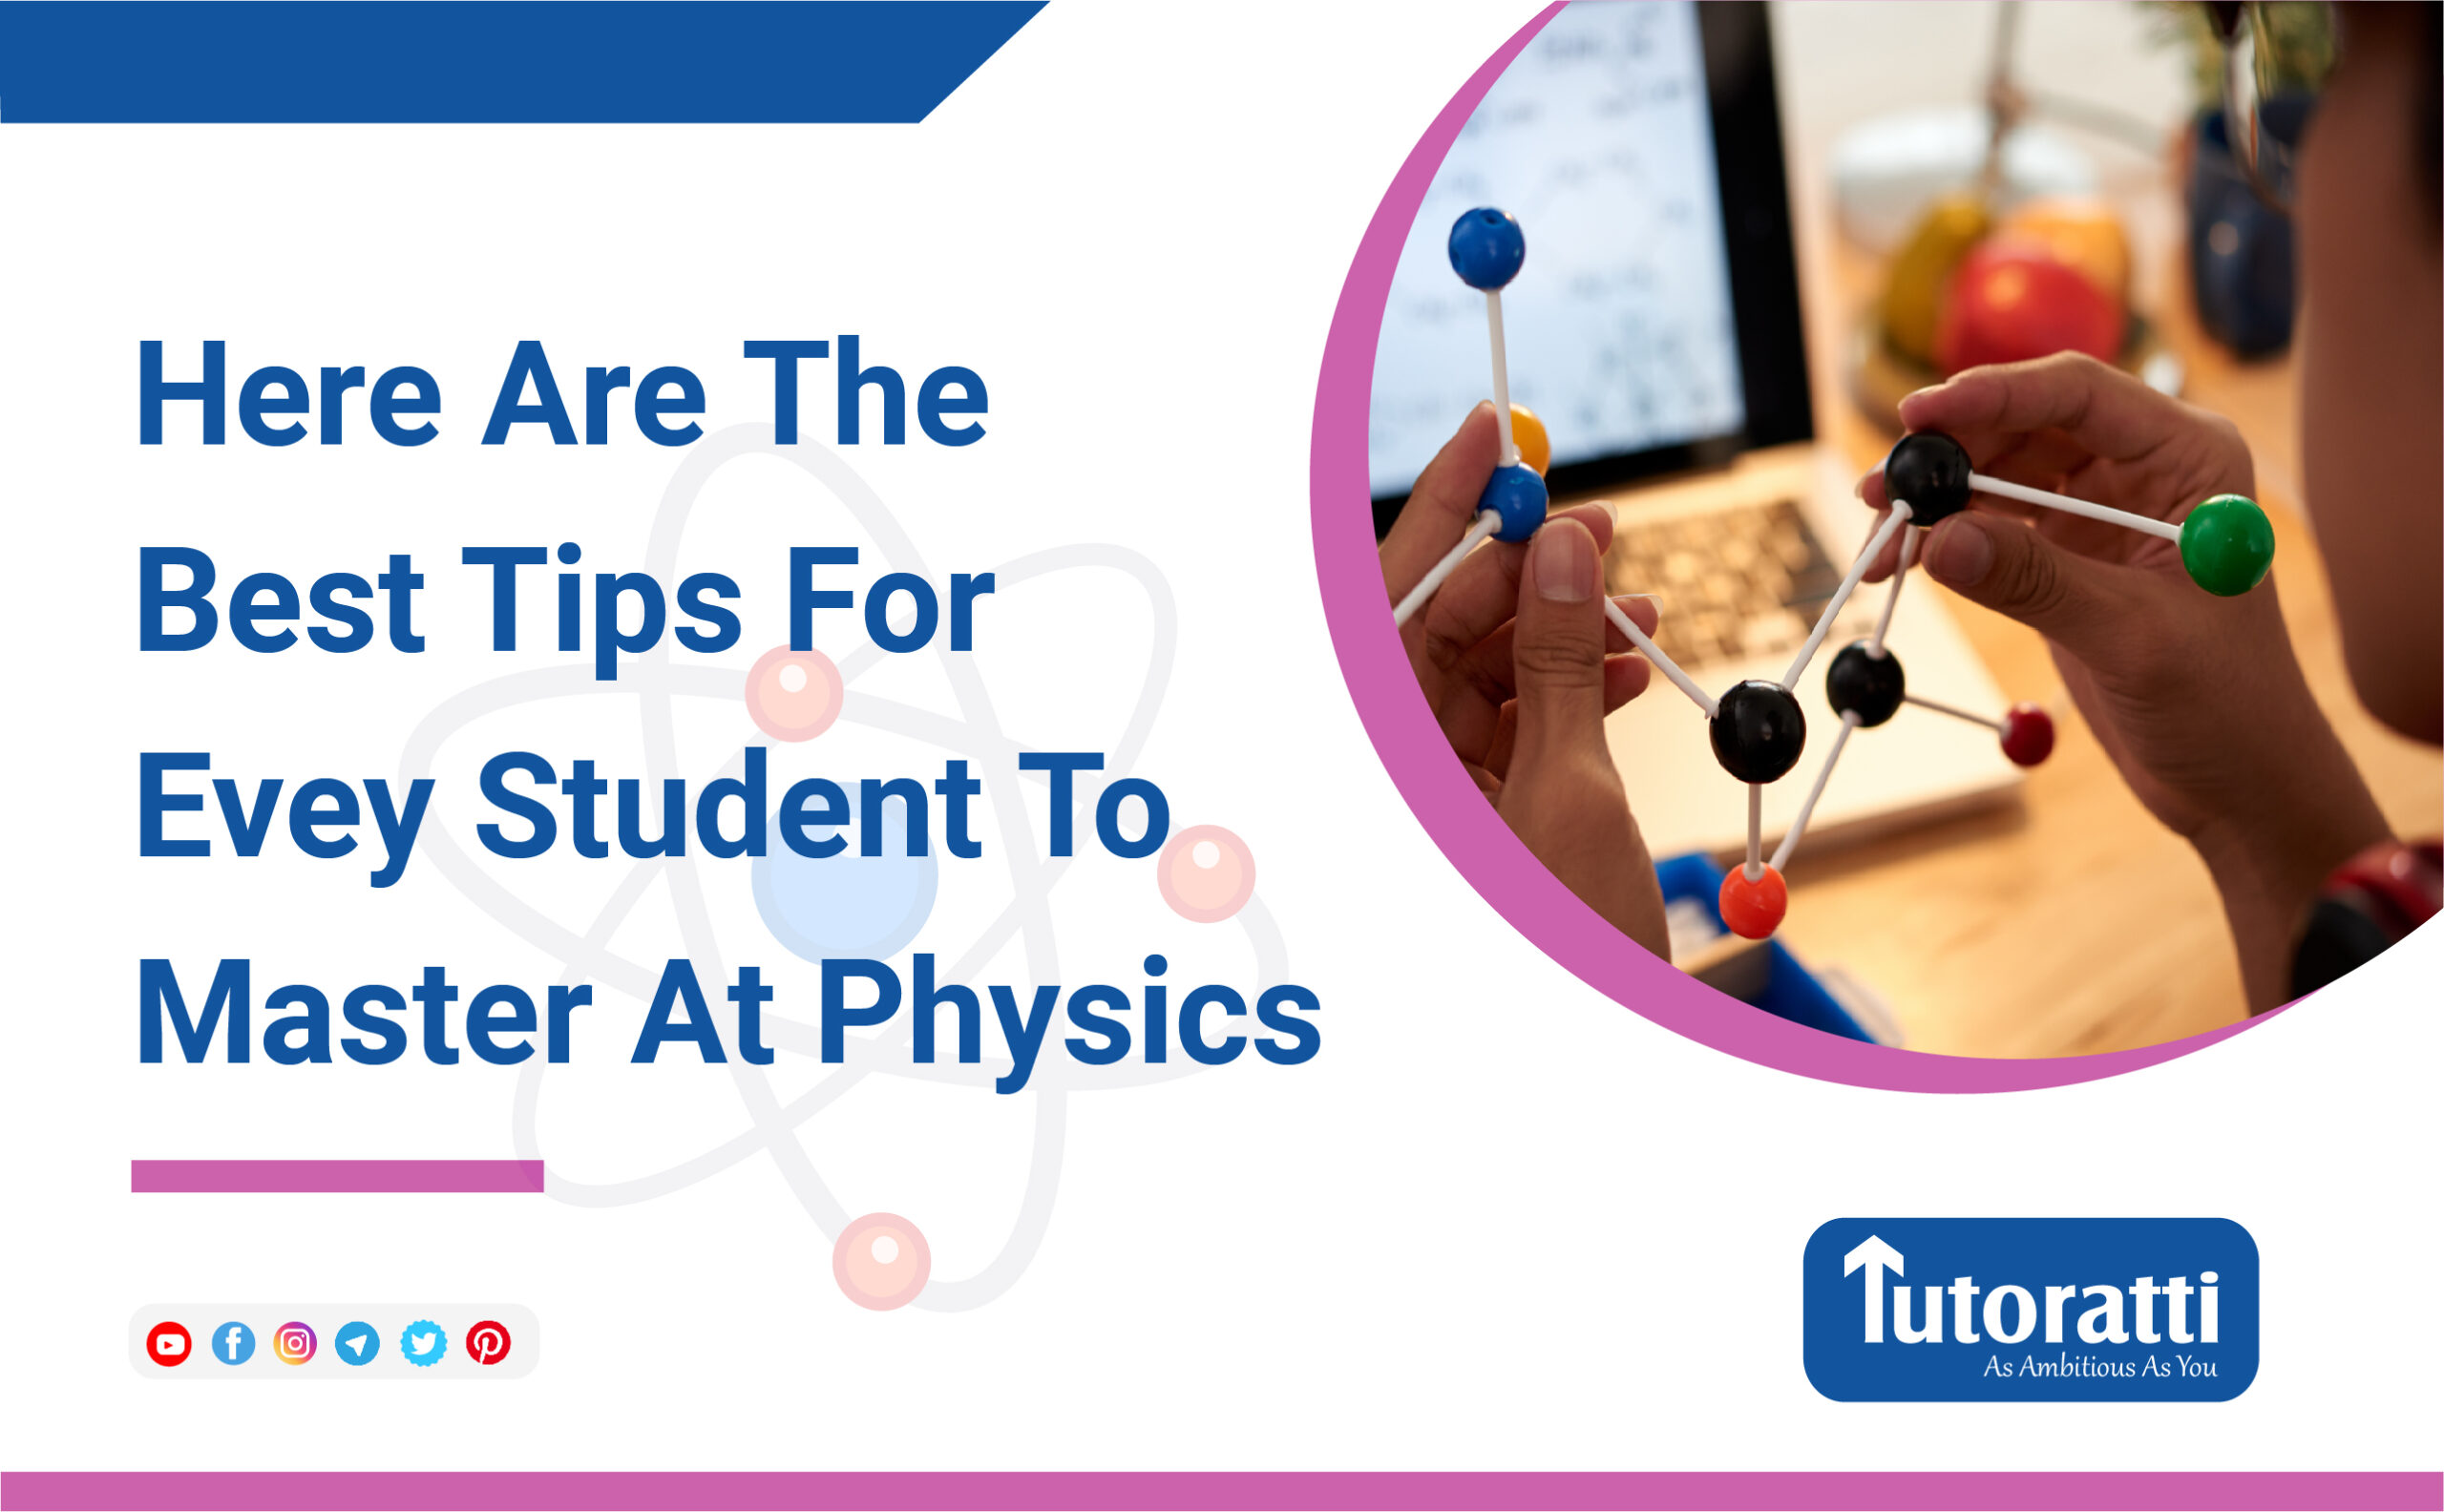 Here Are The Best Tips For Every Student To Master At Physics